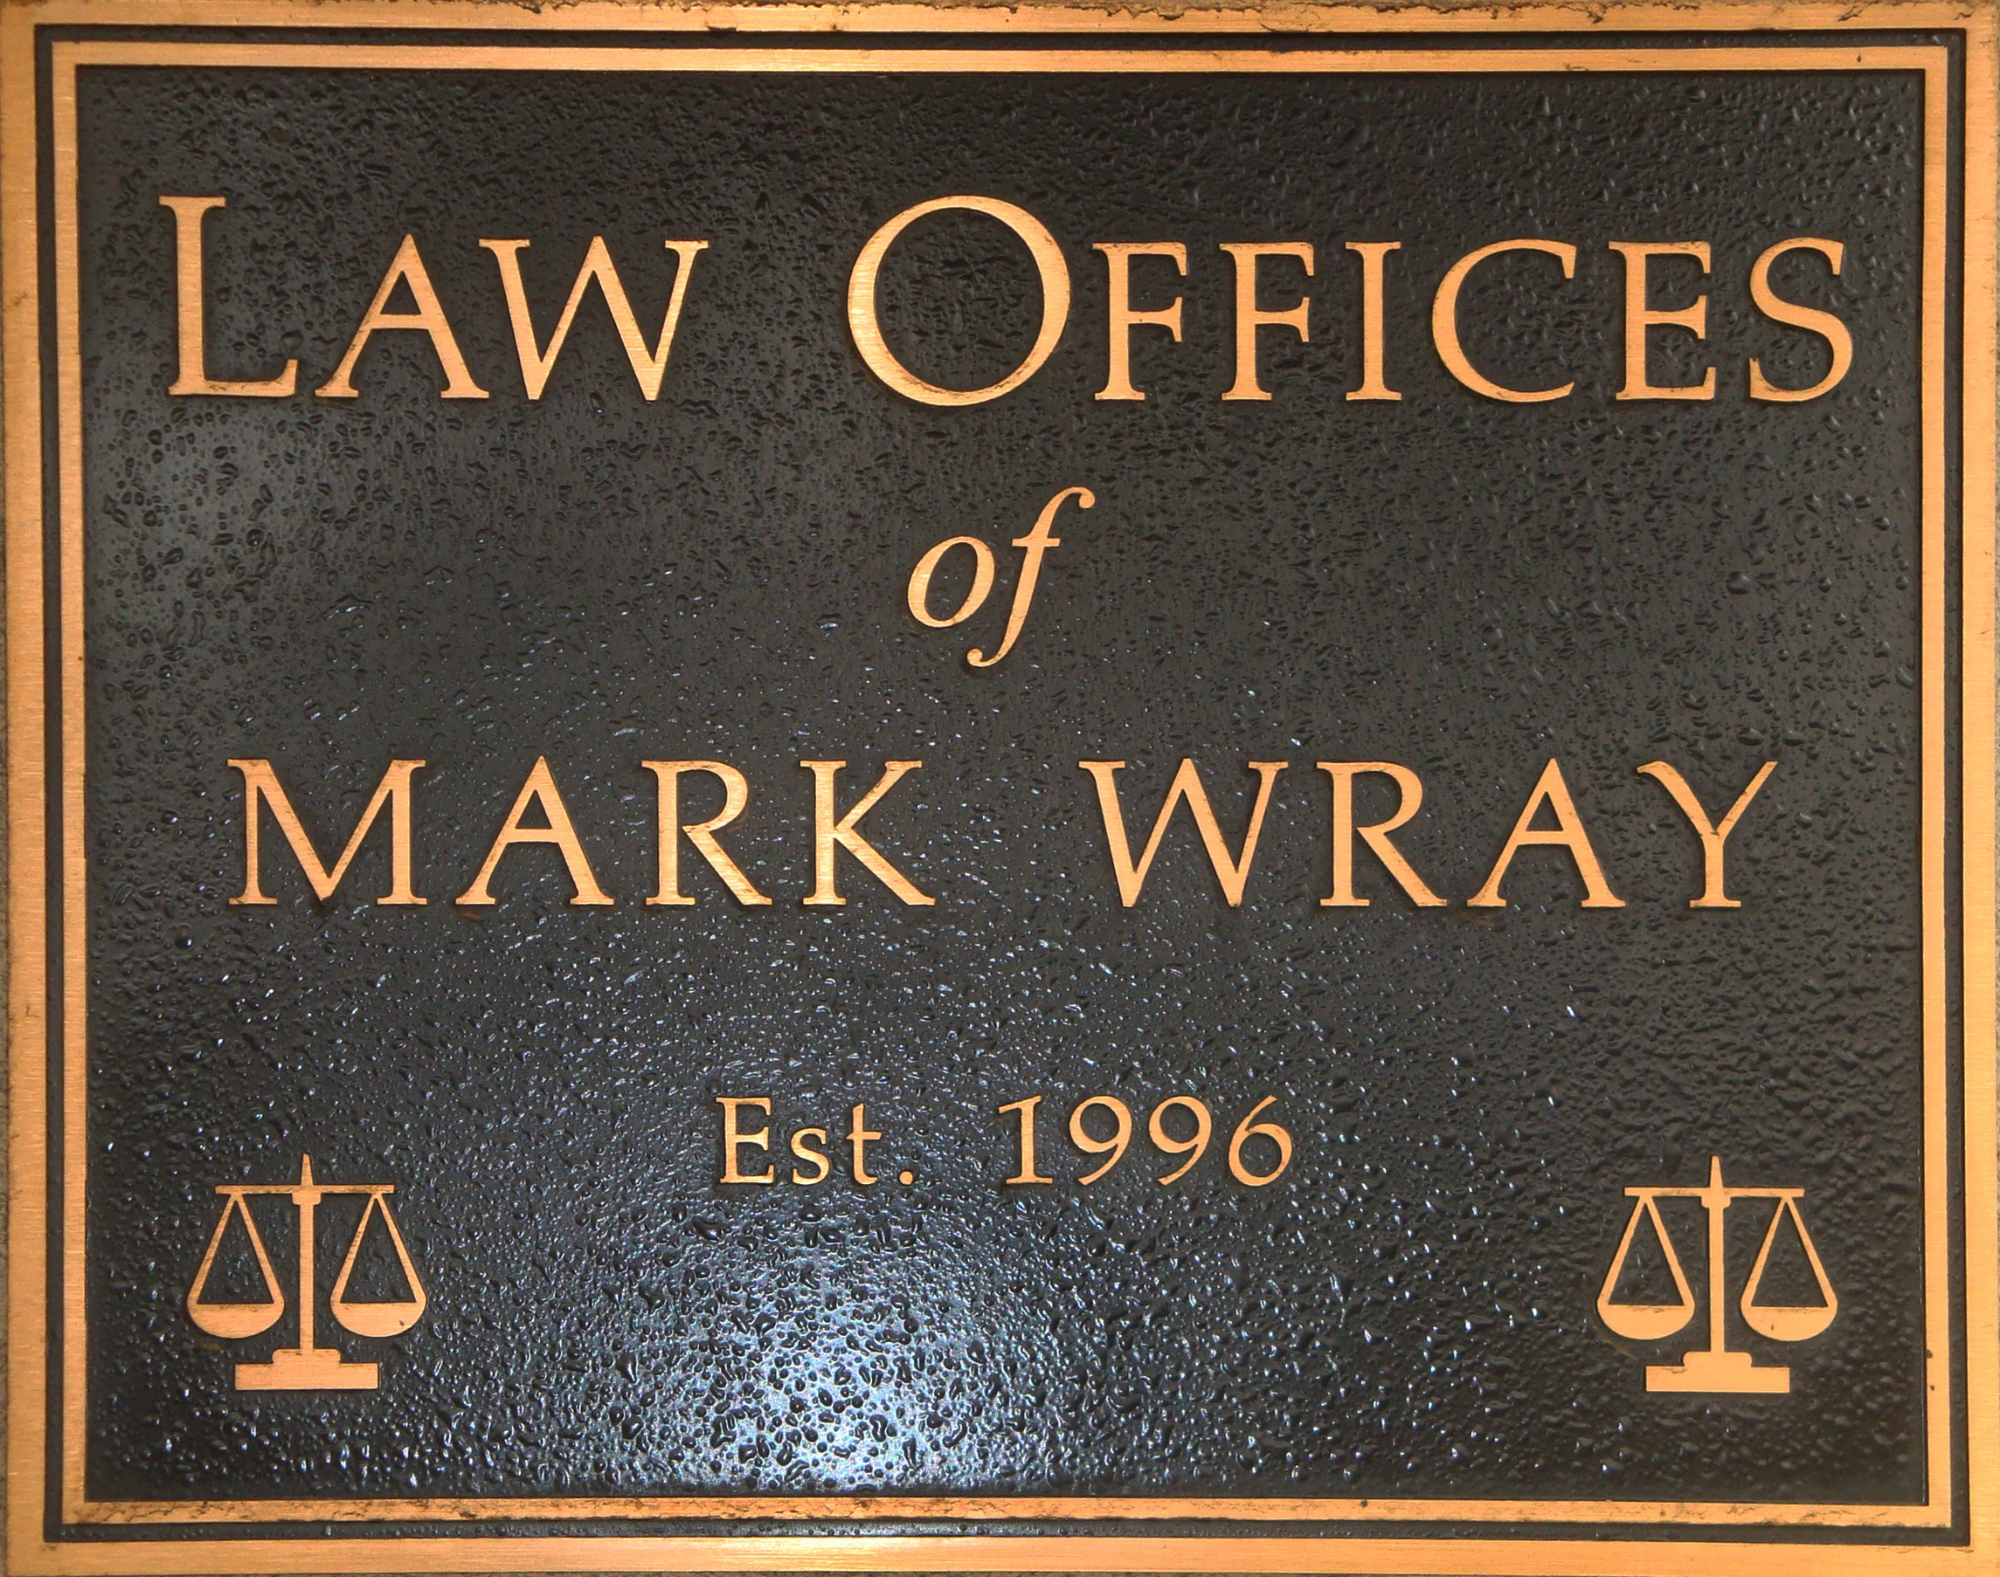 law sign1 copy.jpg